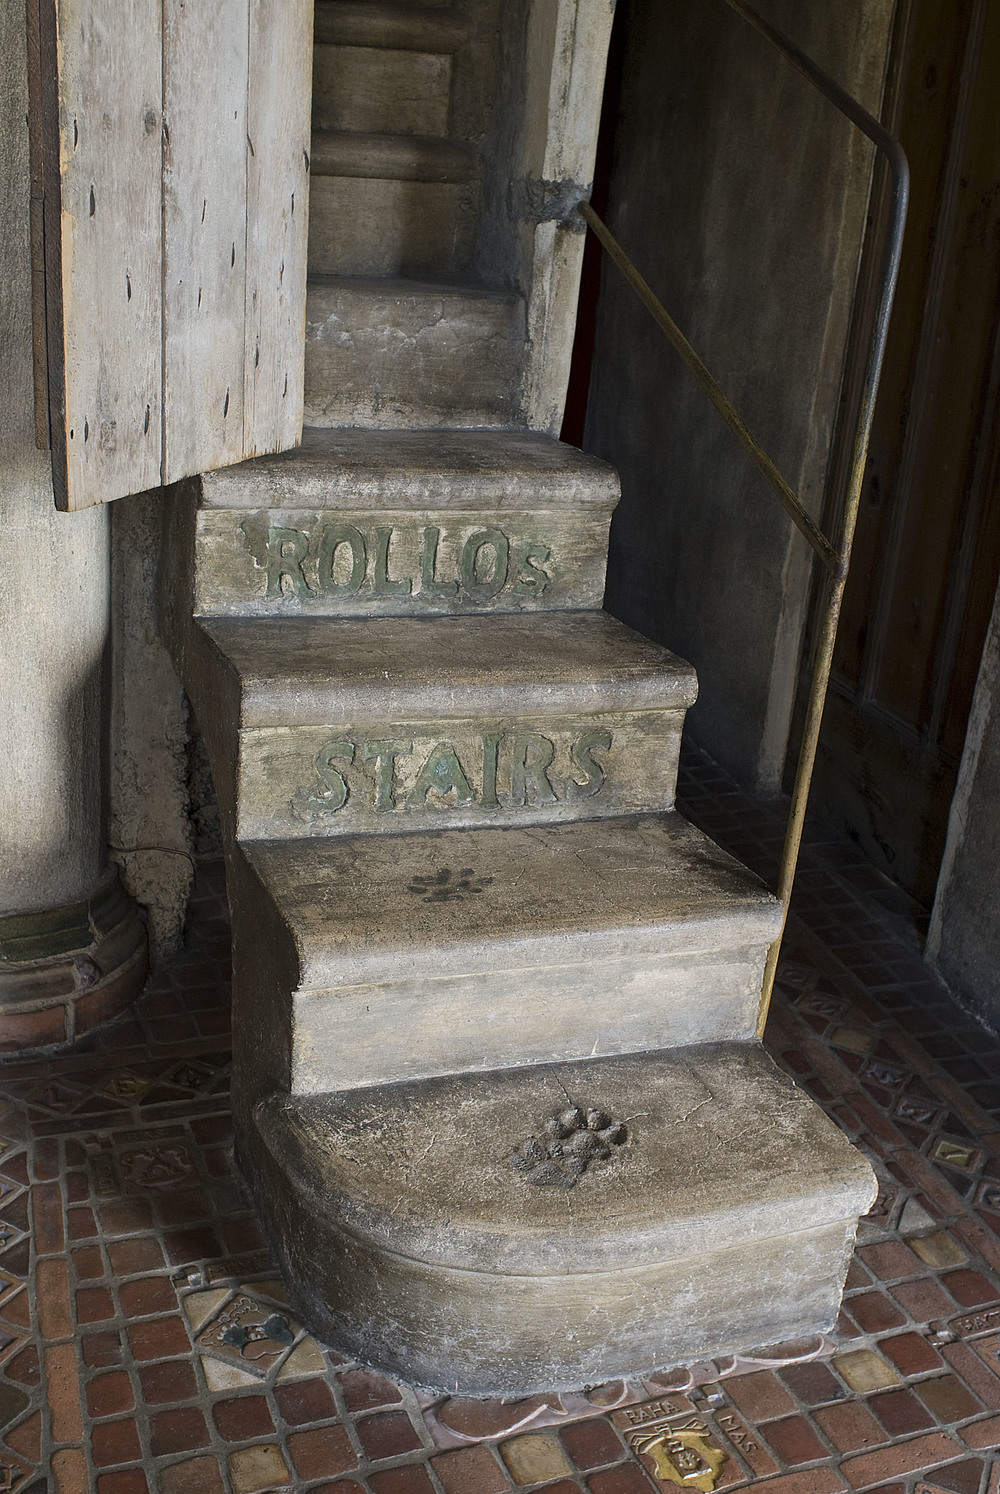 Figure 6: Rollo's stairs in Fonthill. Photograph by Jack Carnell.